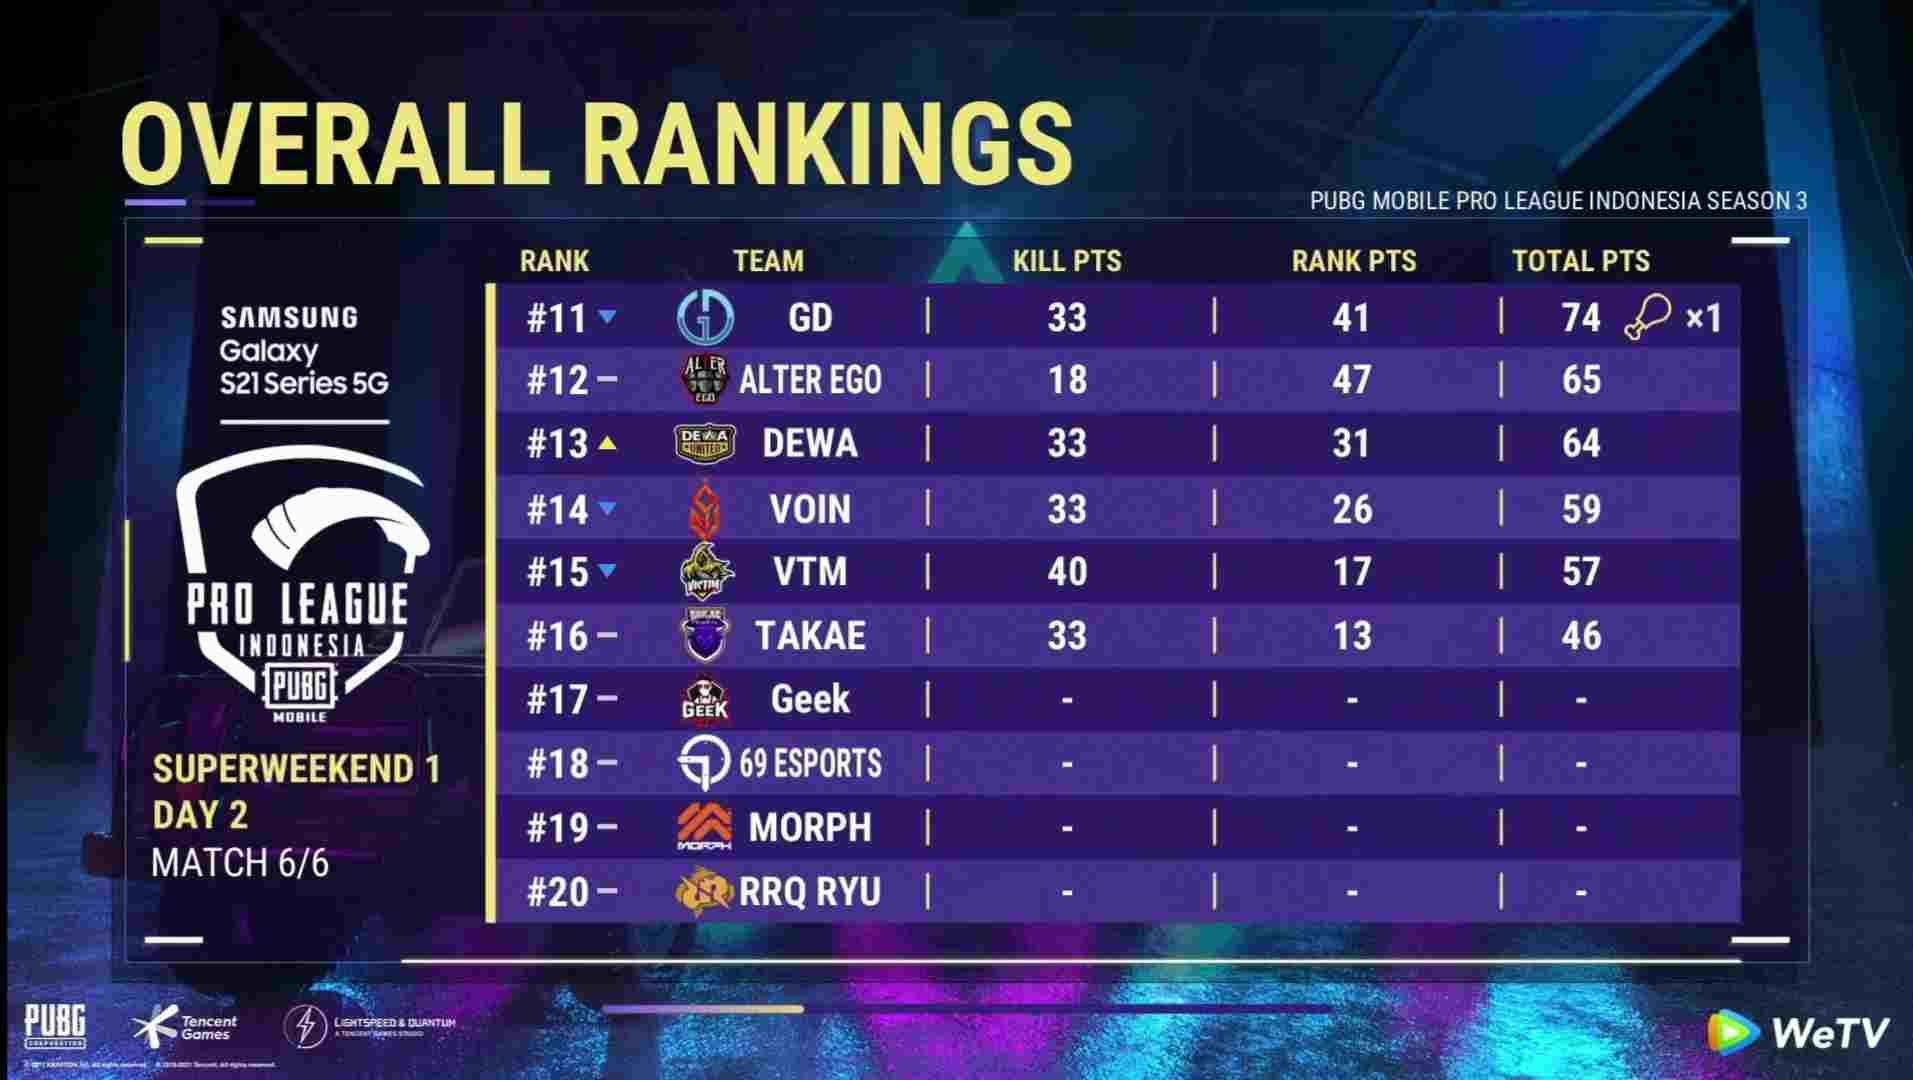 PMPL Indonesia Season 3 Week 1 Day 2: Overall Standings